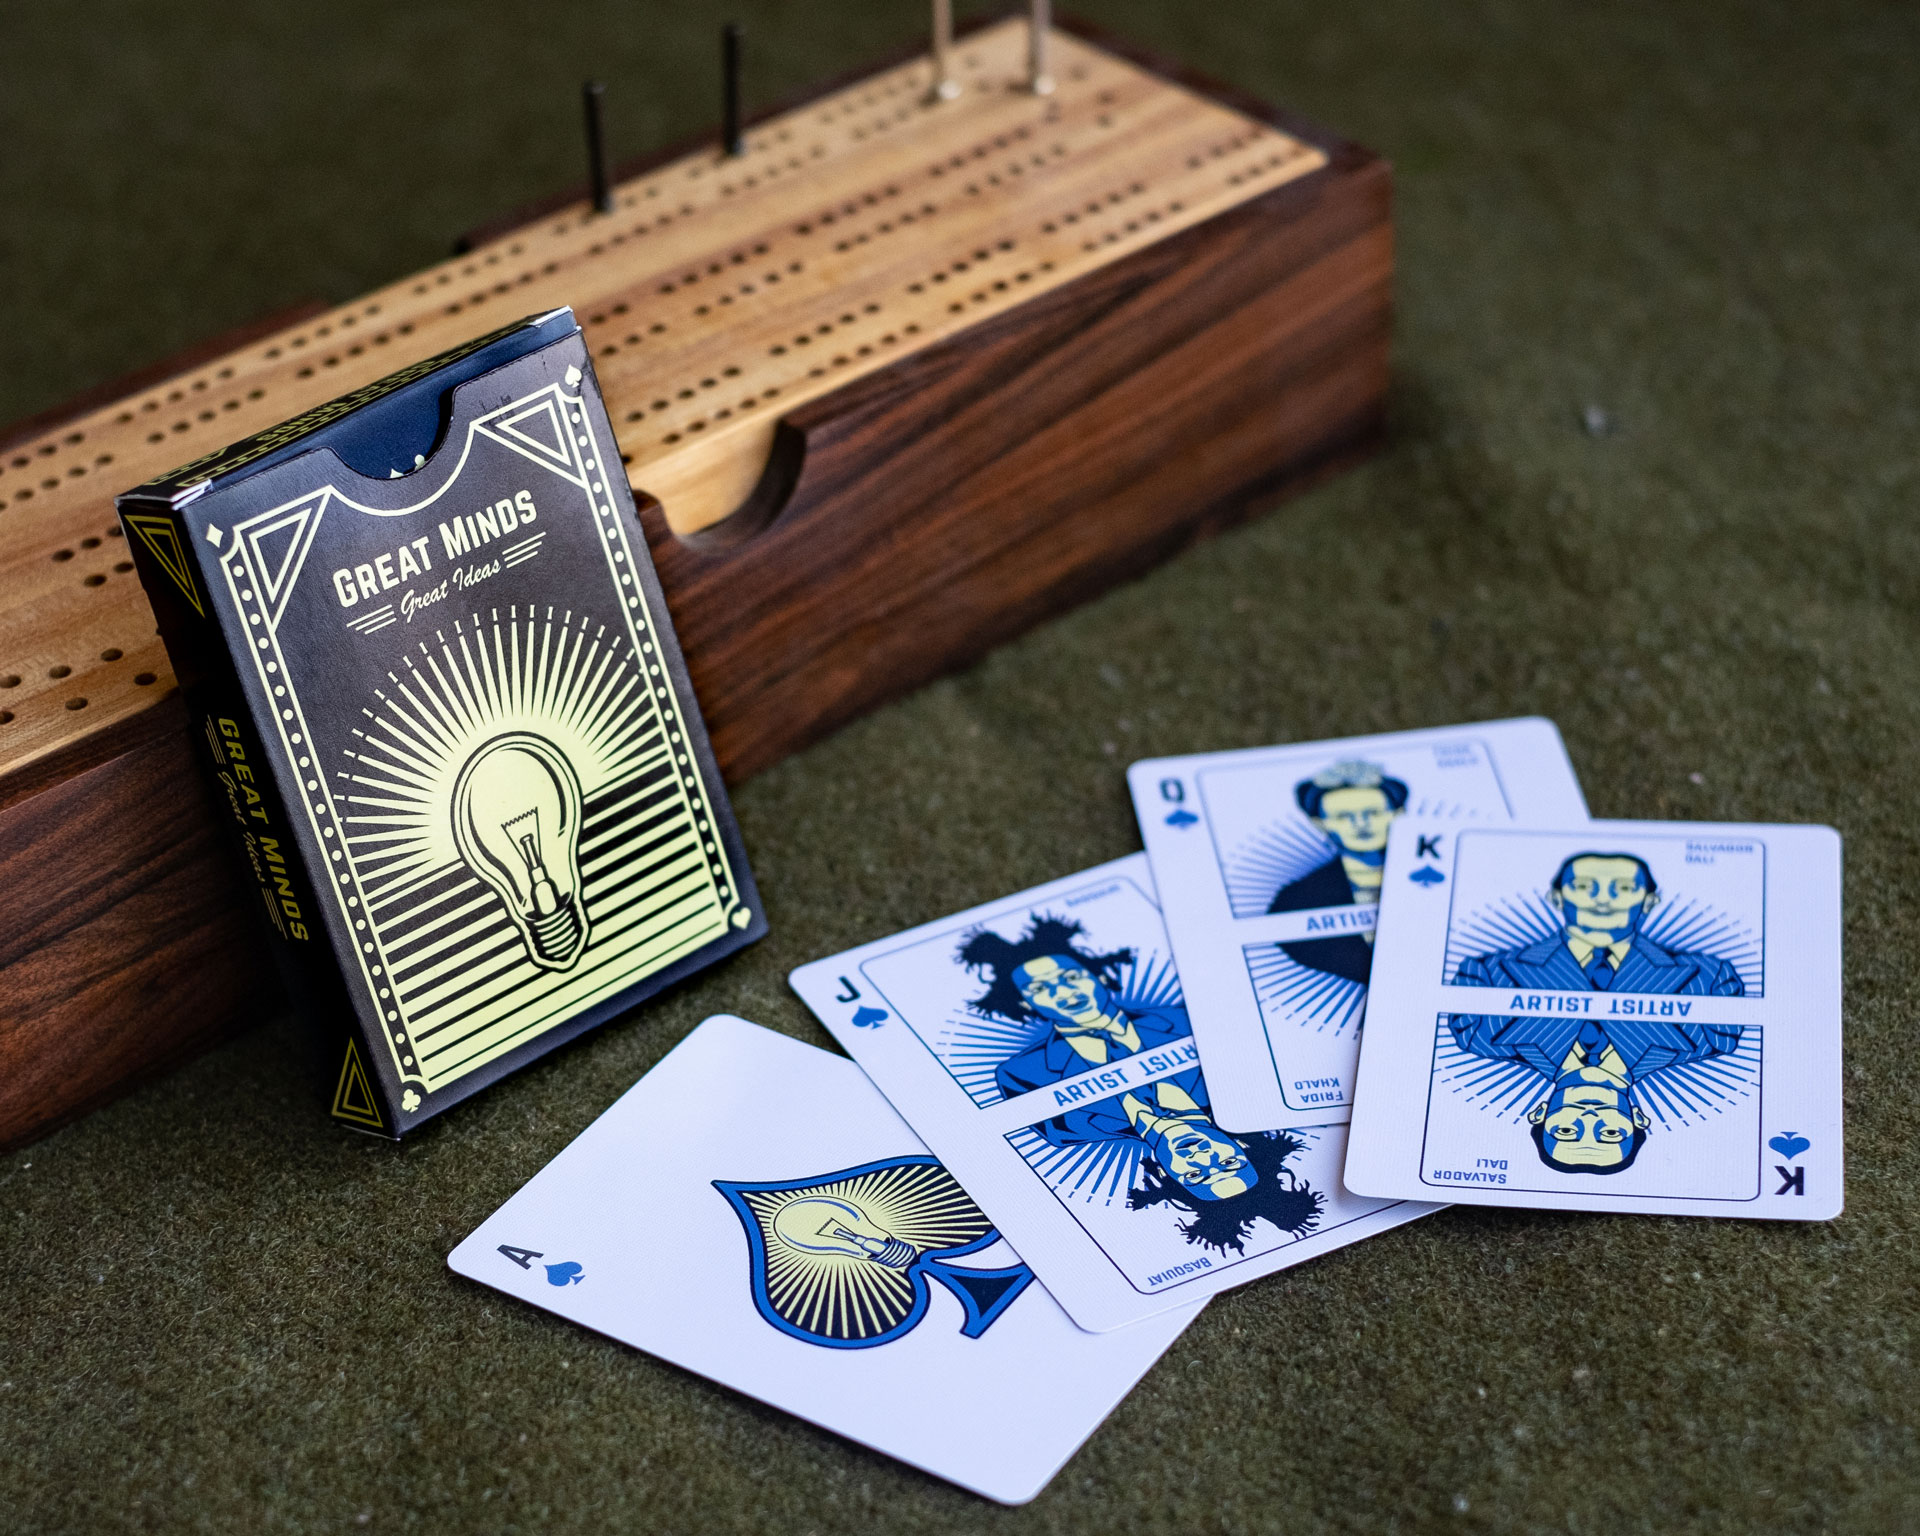 Great Minds Playing Cards